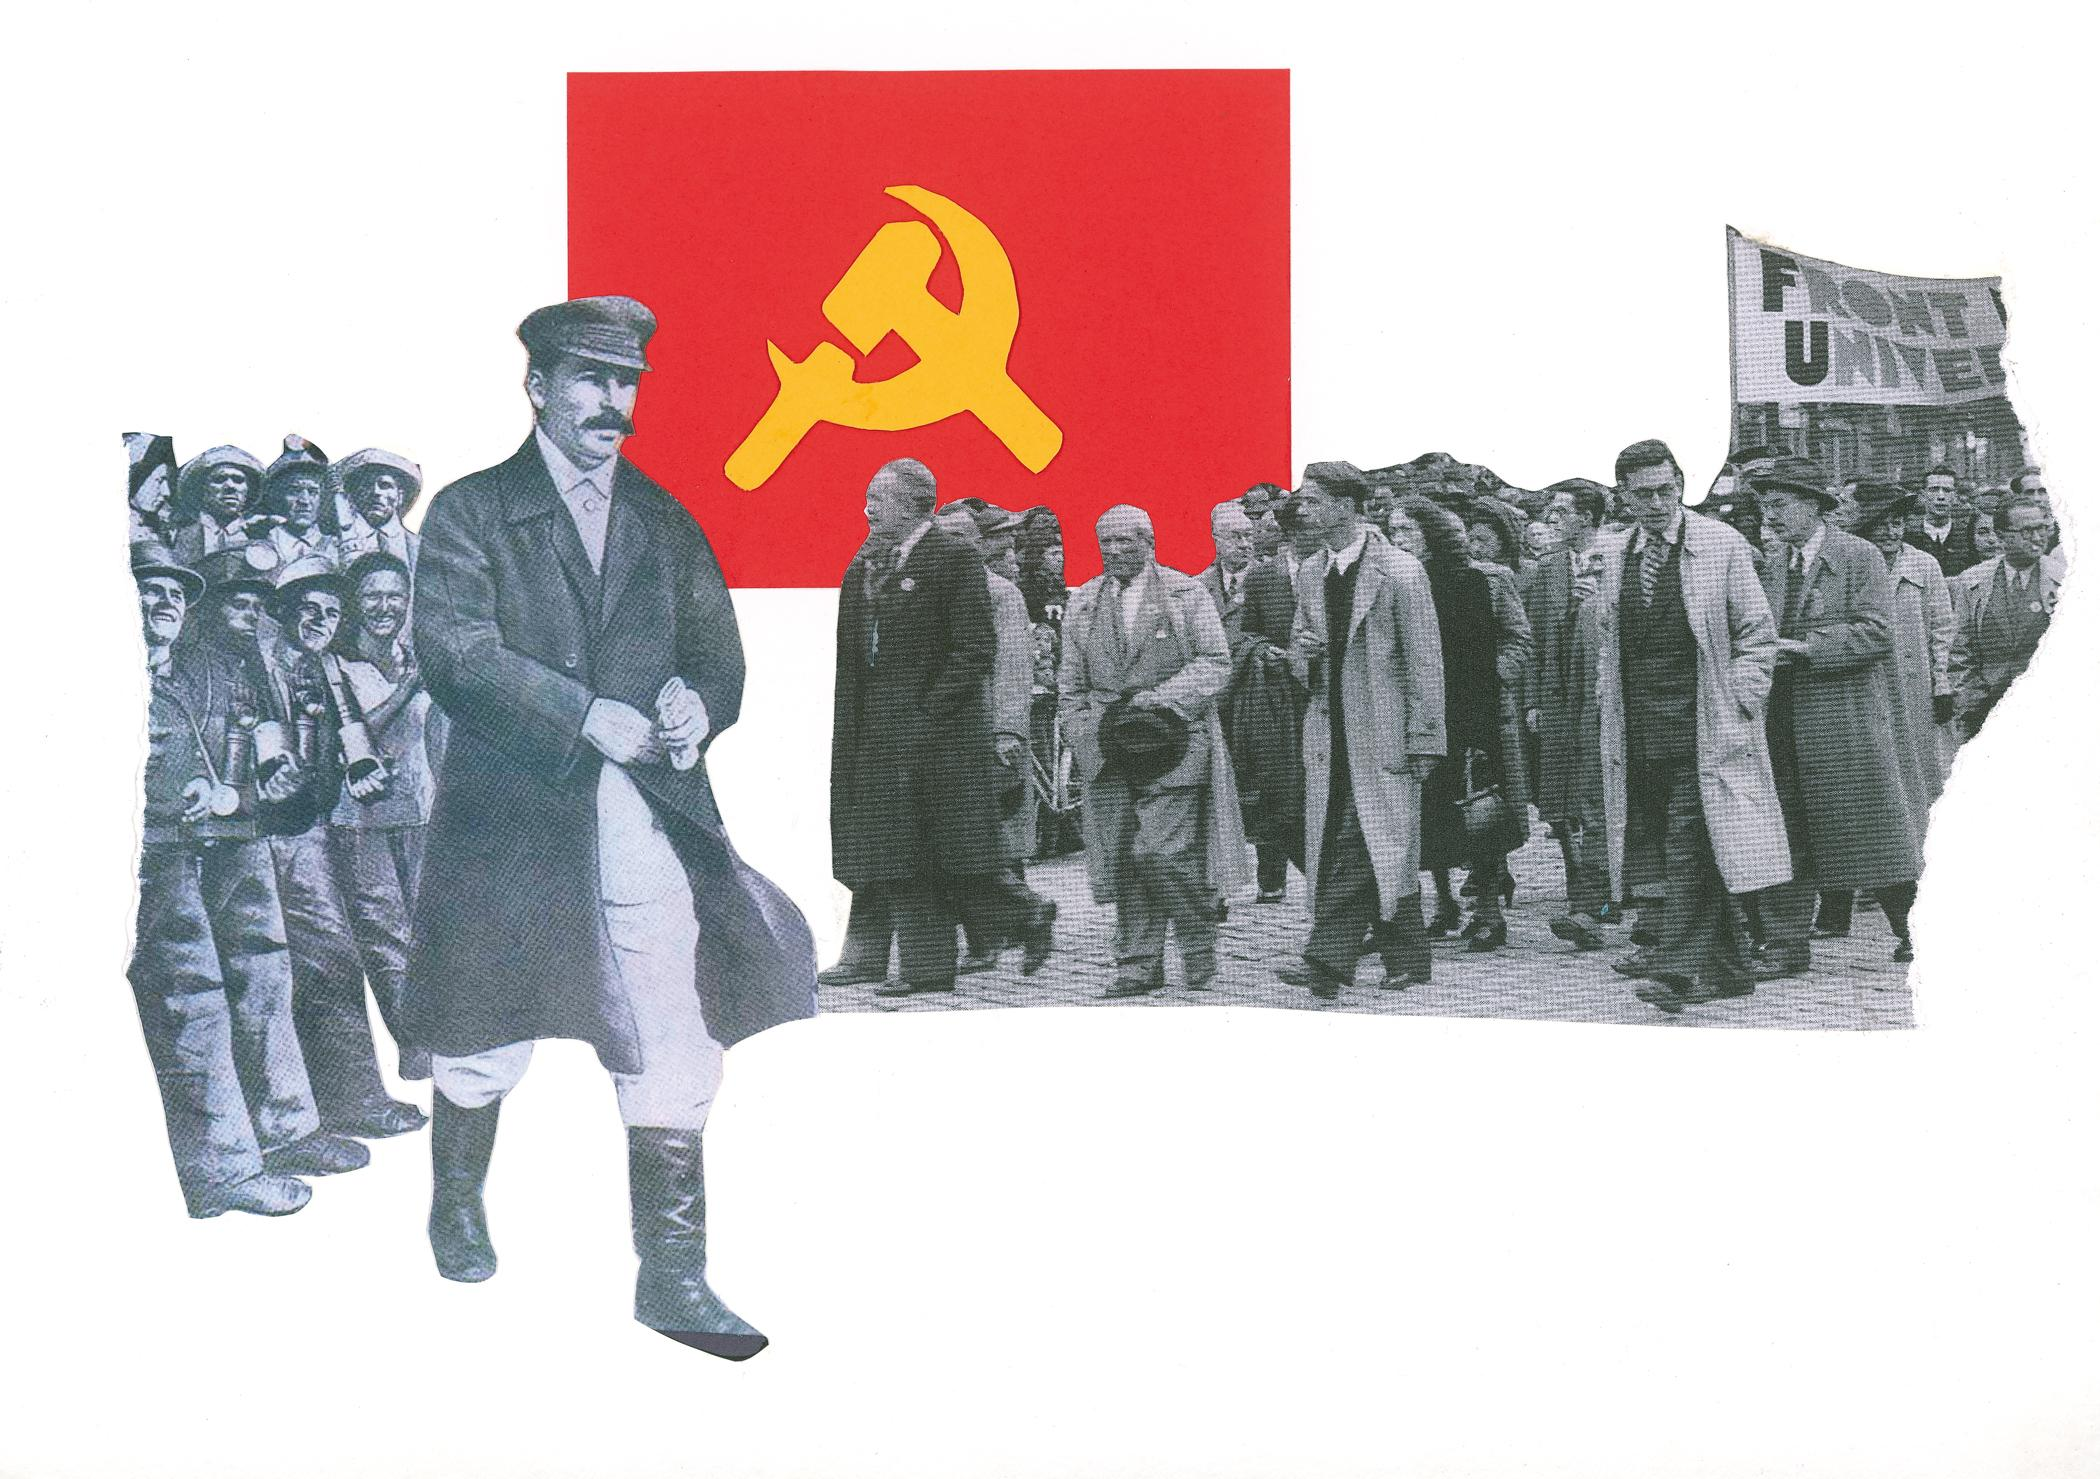 A collage image features Joseph Stalin walking, a group of soliders smiling, and a crowd of people marching, carrying sign—all juxtaposed against the red and yellow Communist flag.